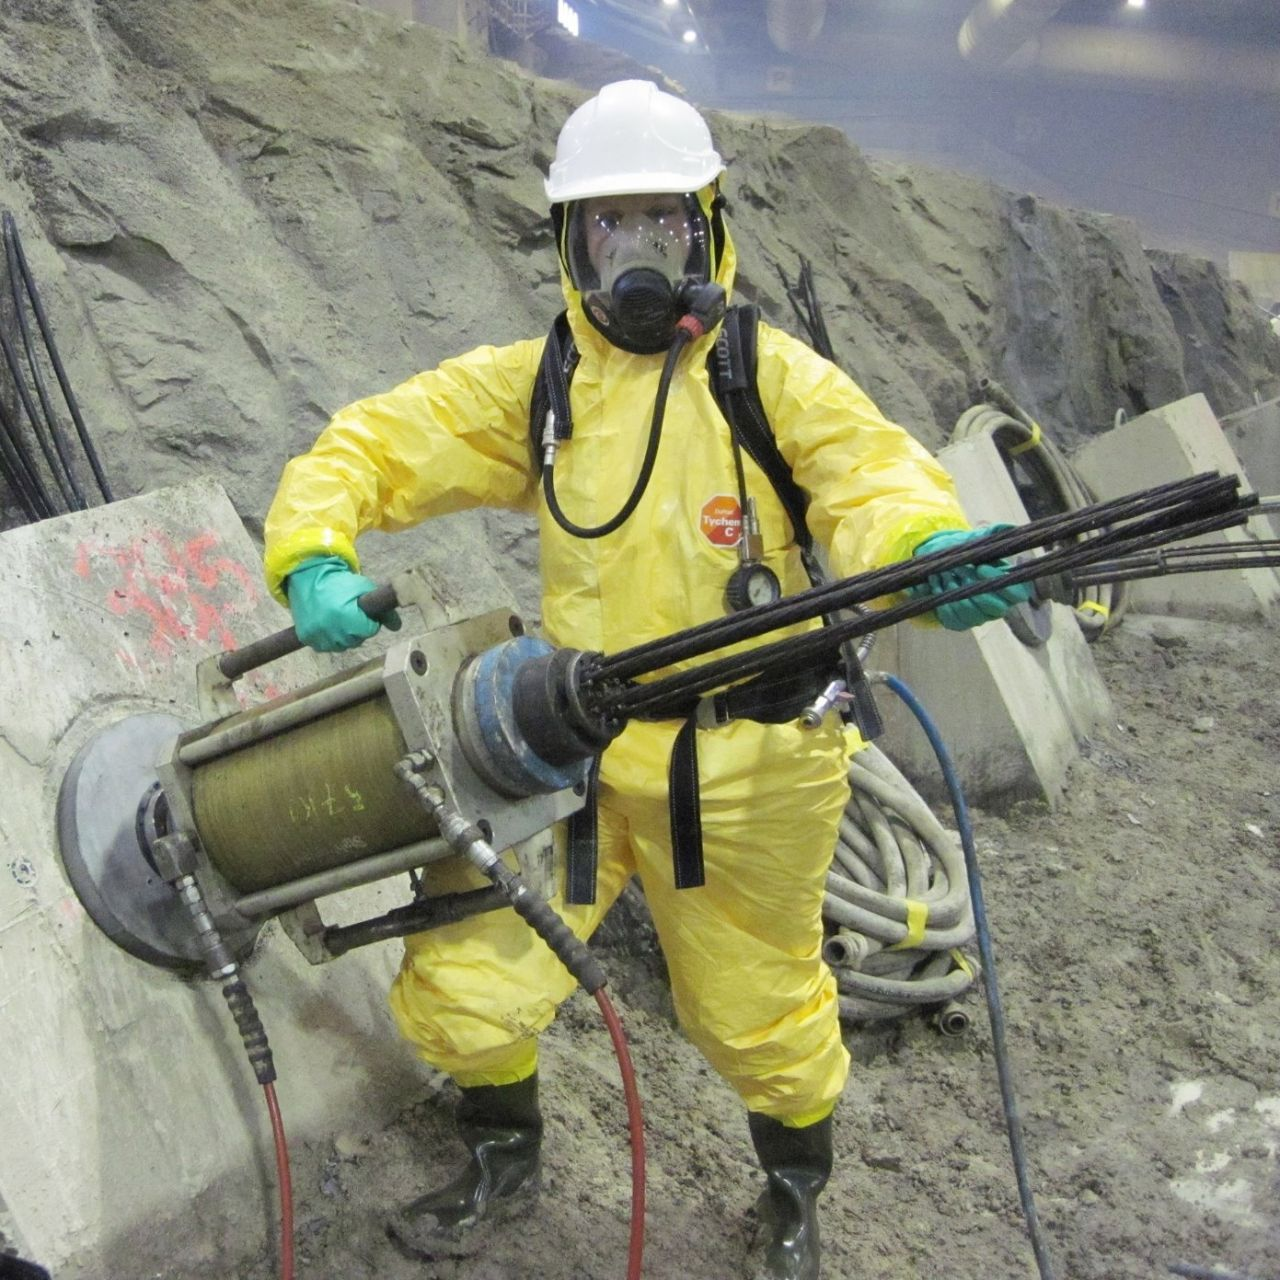 Tensioning the slope-stabilization anchor in the contaminated zone